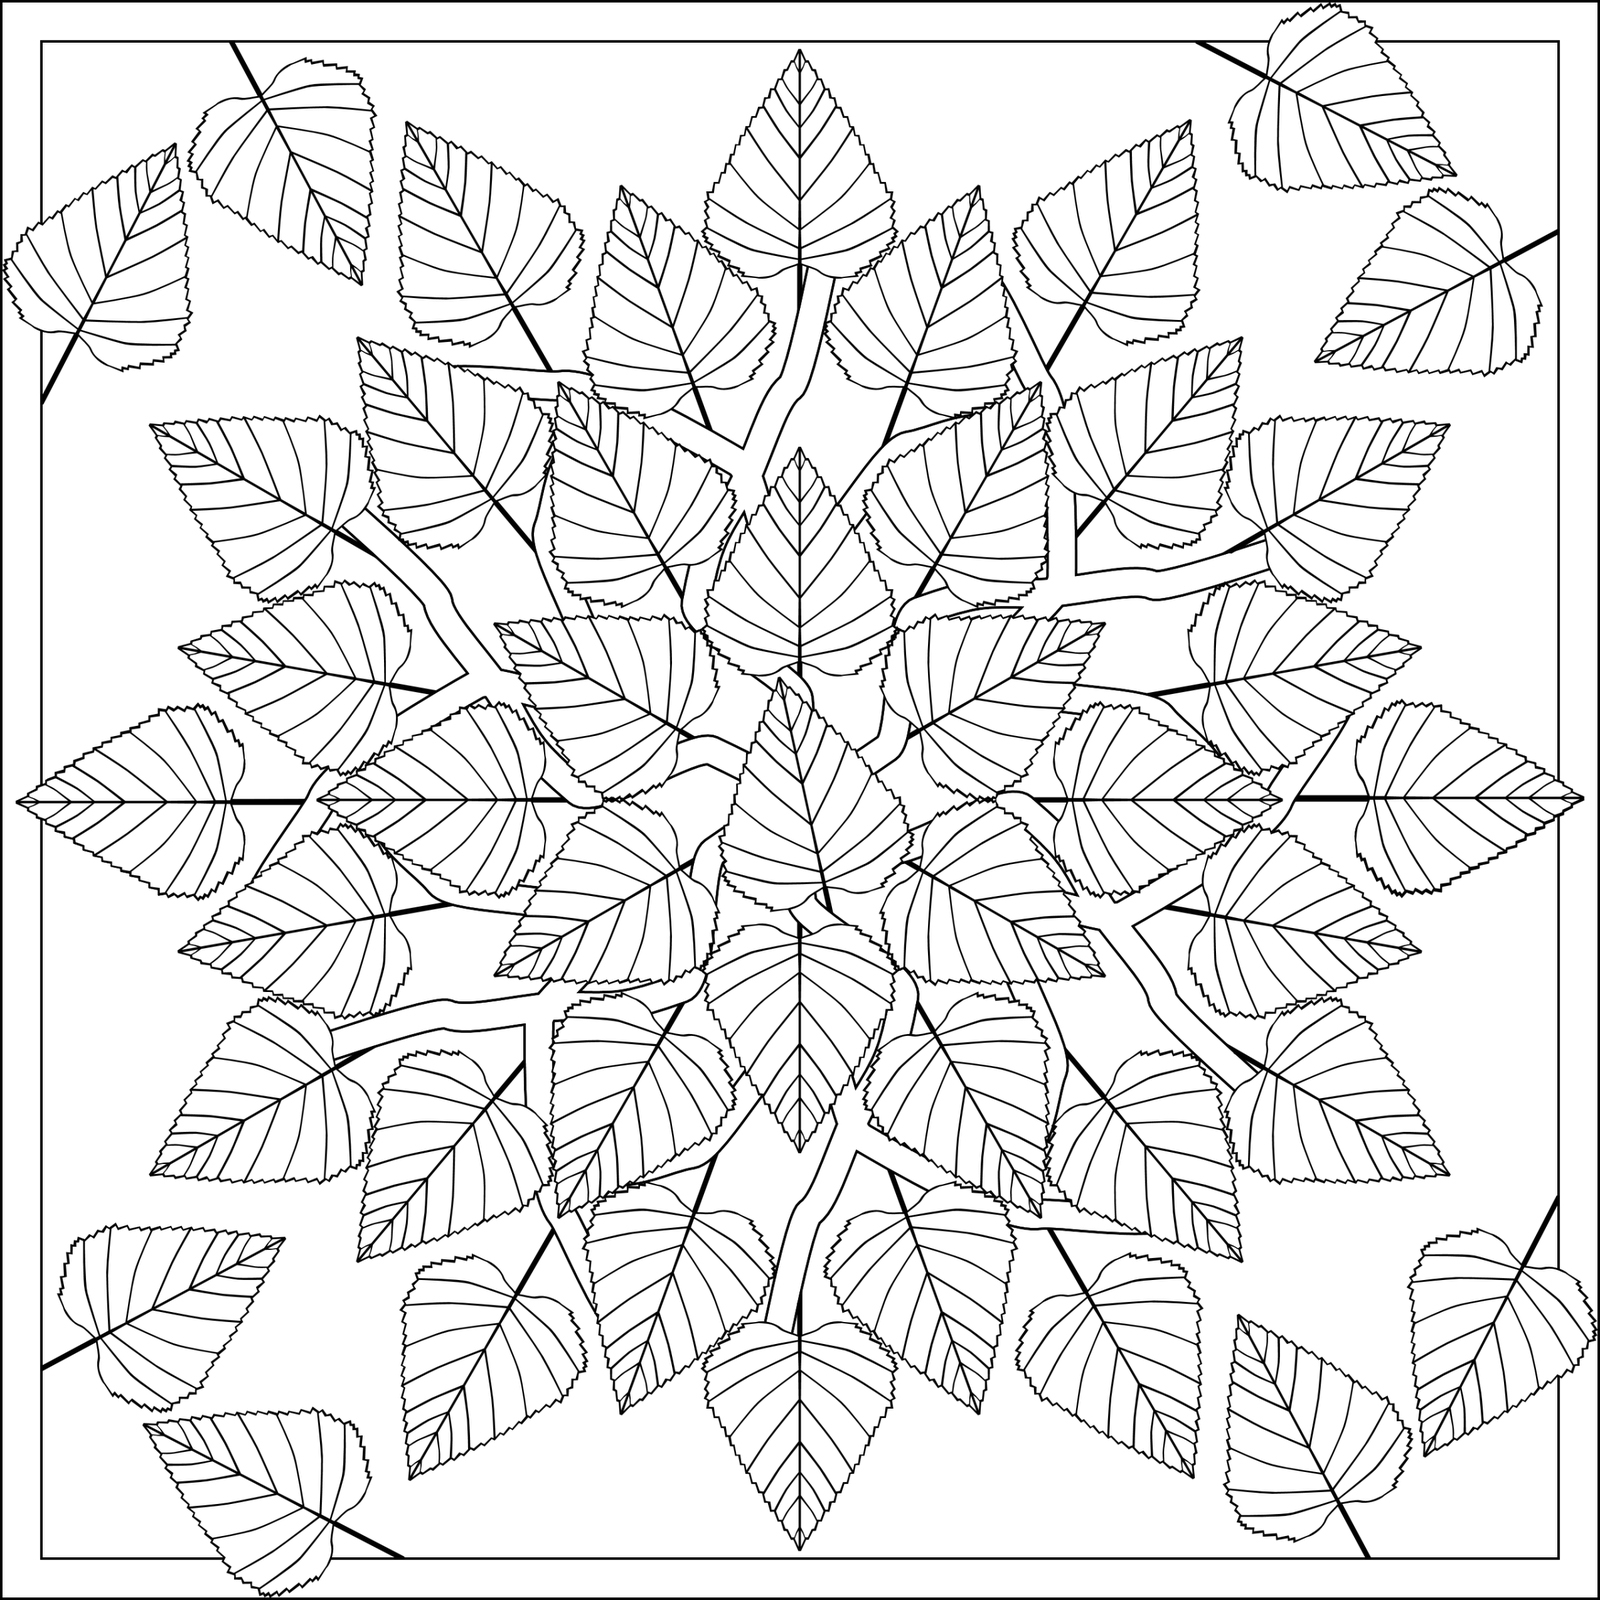 leaf coloring pages for adults - photo#24